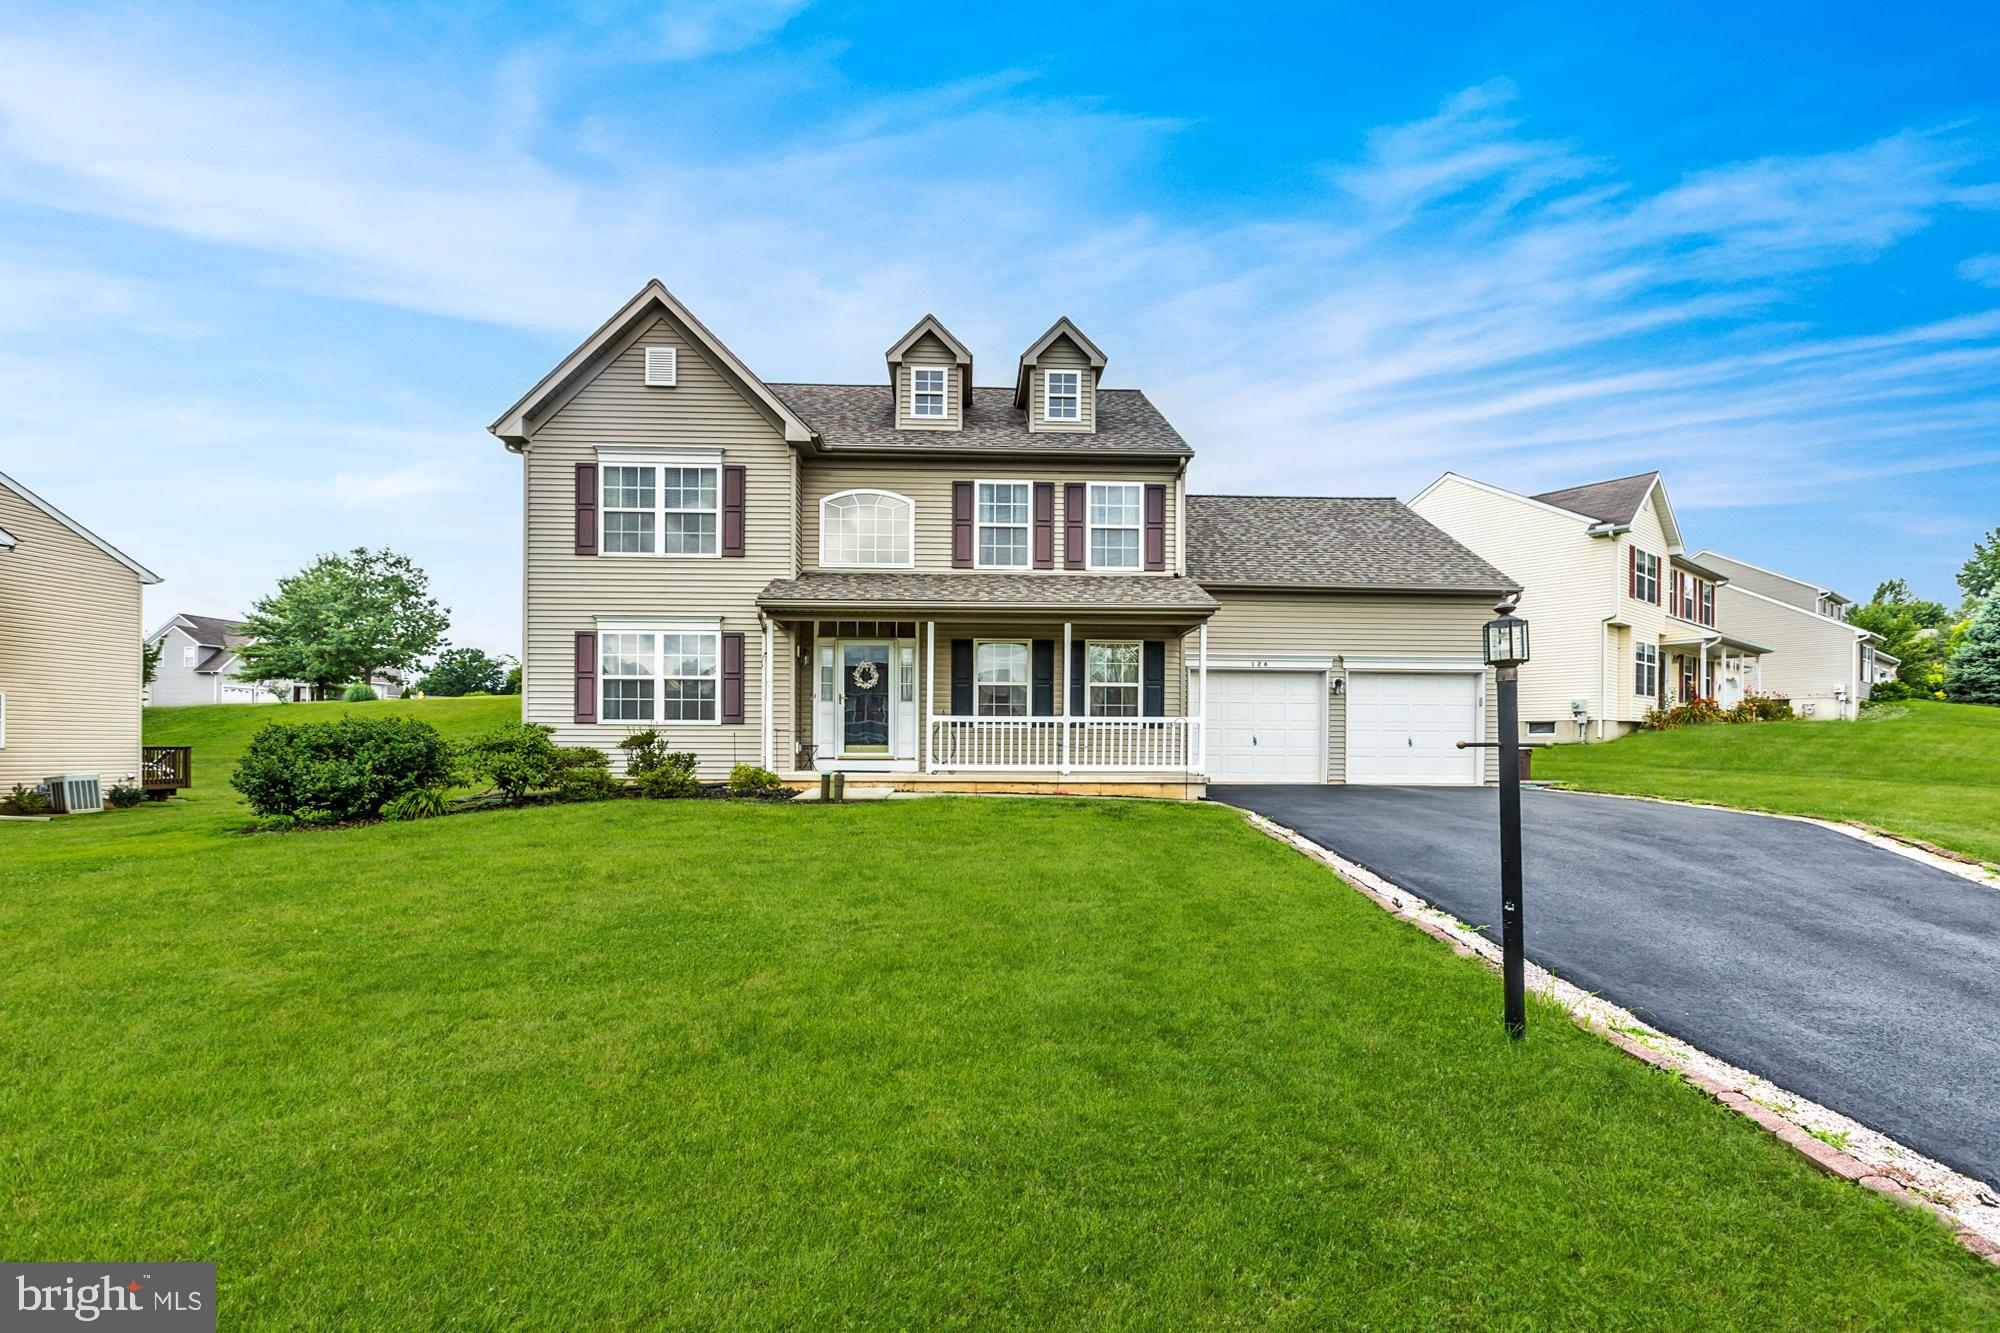 126 TURNBERRY DRIVE, THORNDALE, PA 19372